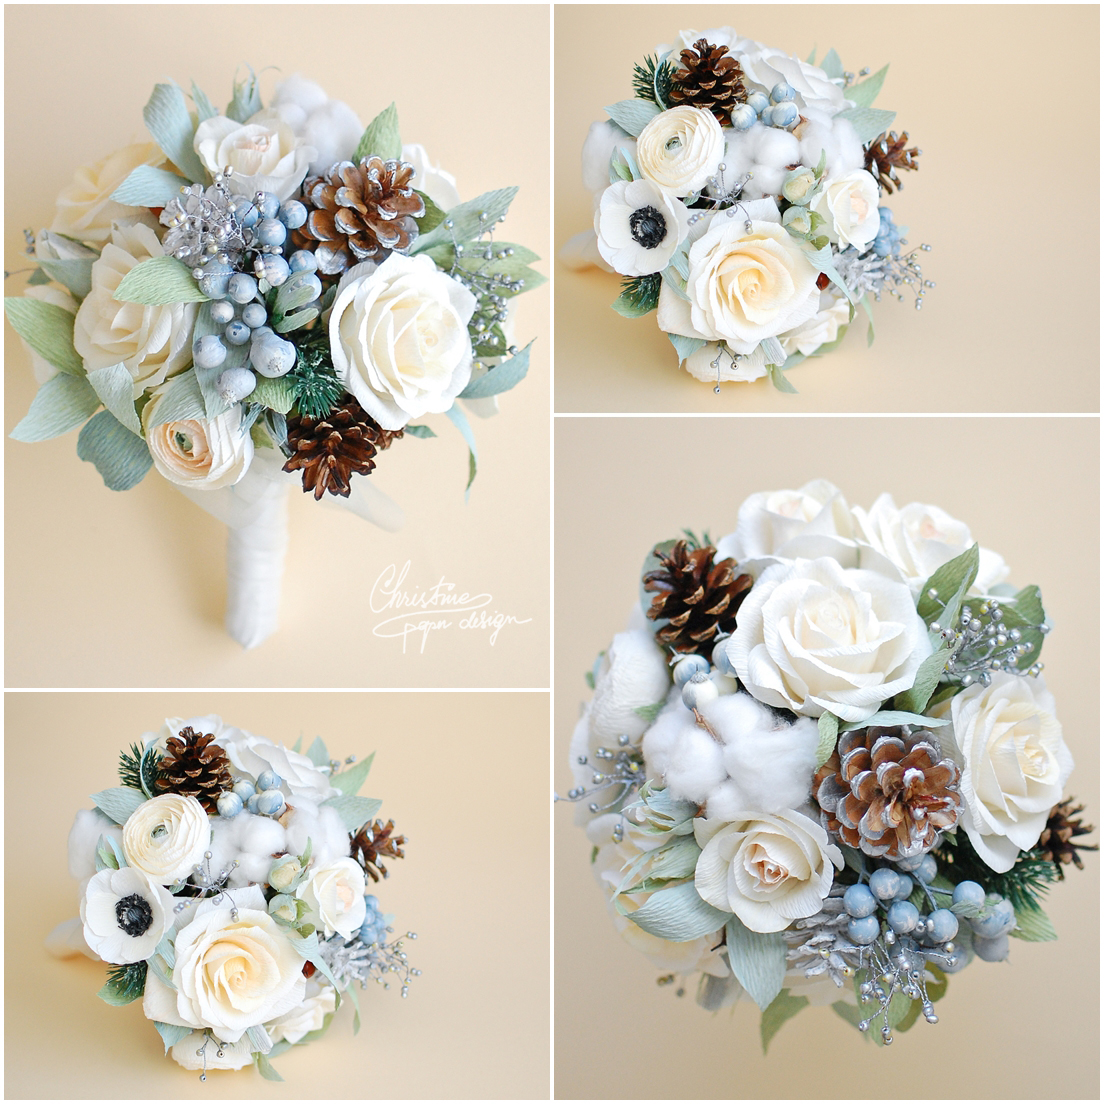 8Christine paper design - alternative winter flowers wedding bouquet2